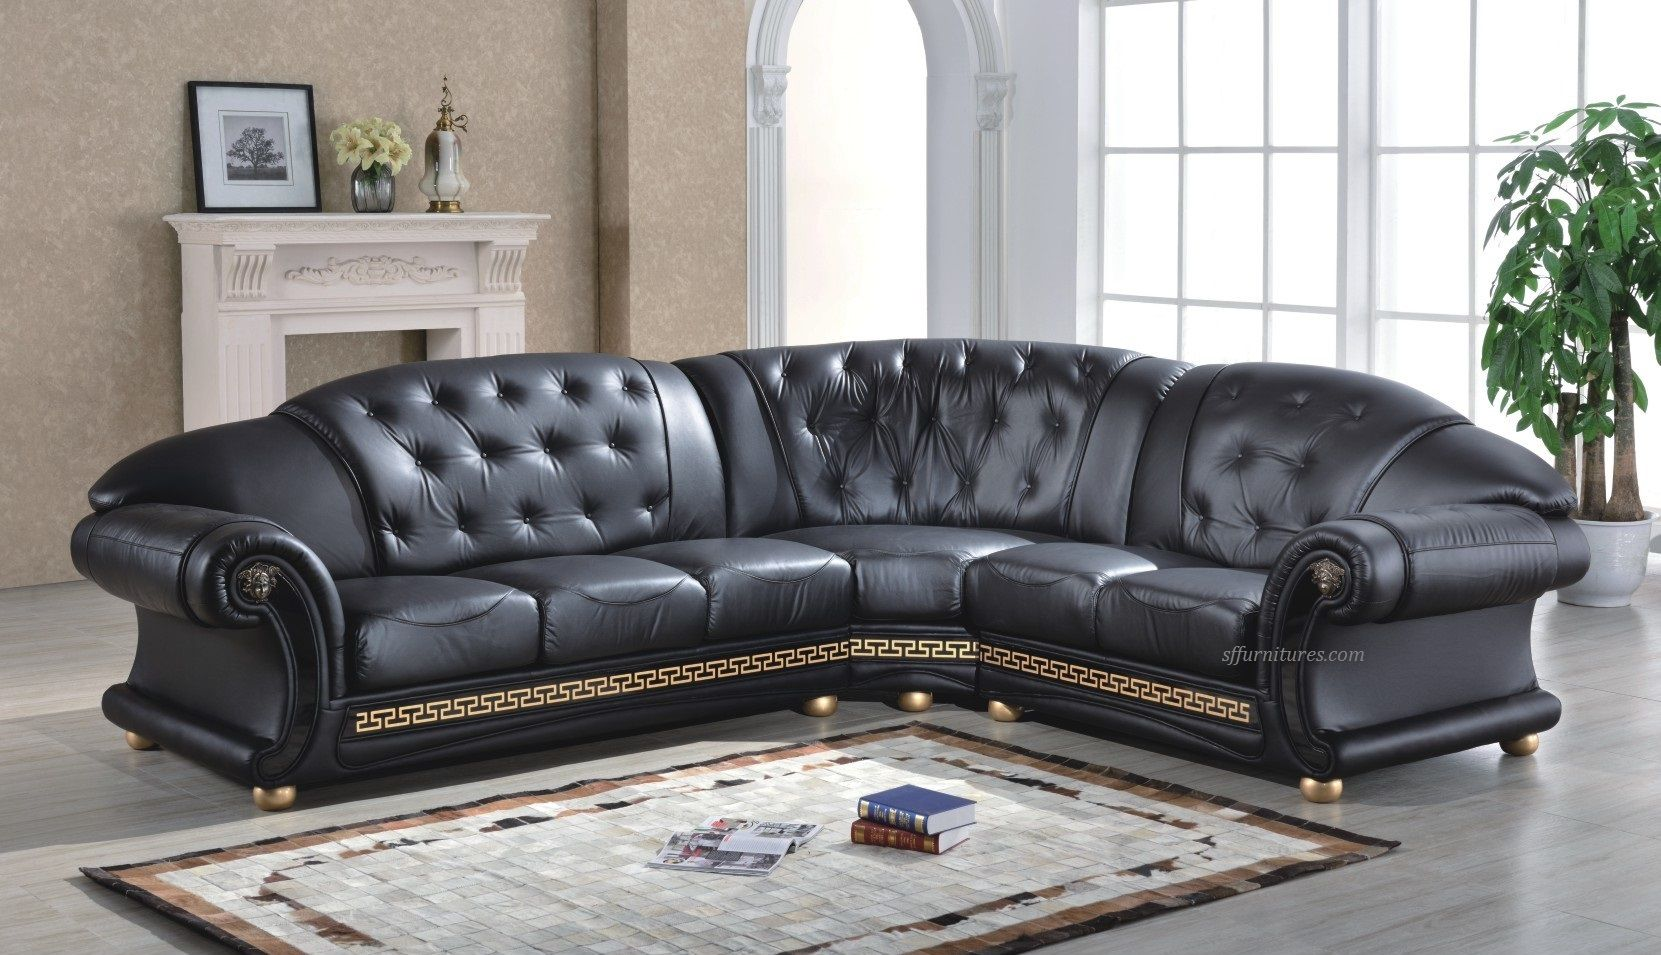 Versace Sofa Uk In 2020 Sofa Uk Sofa Italian Leather Sofa